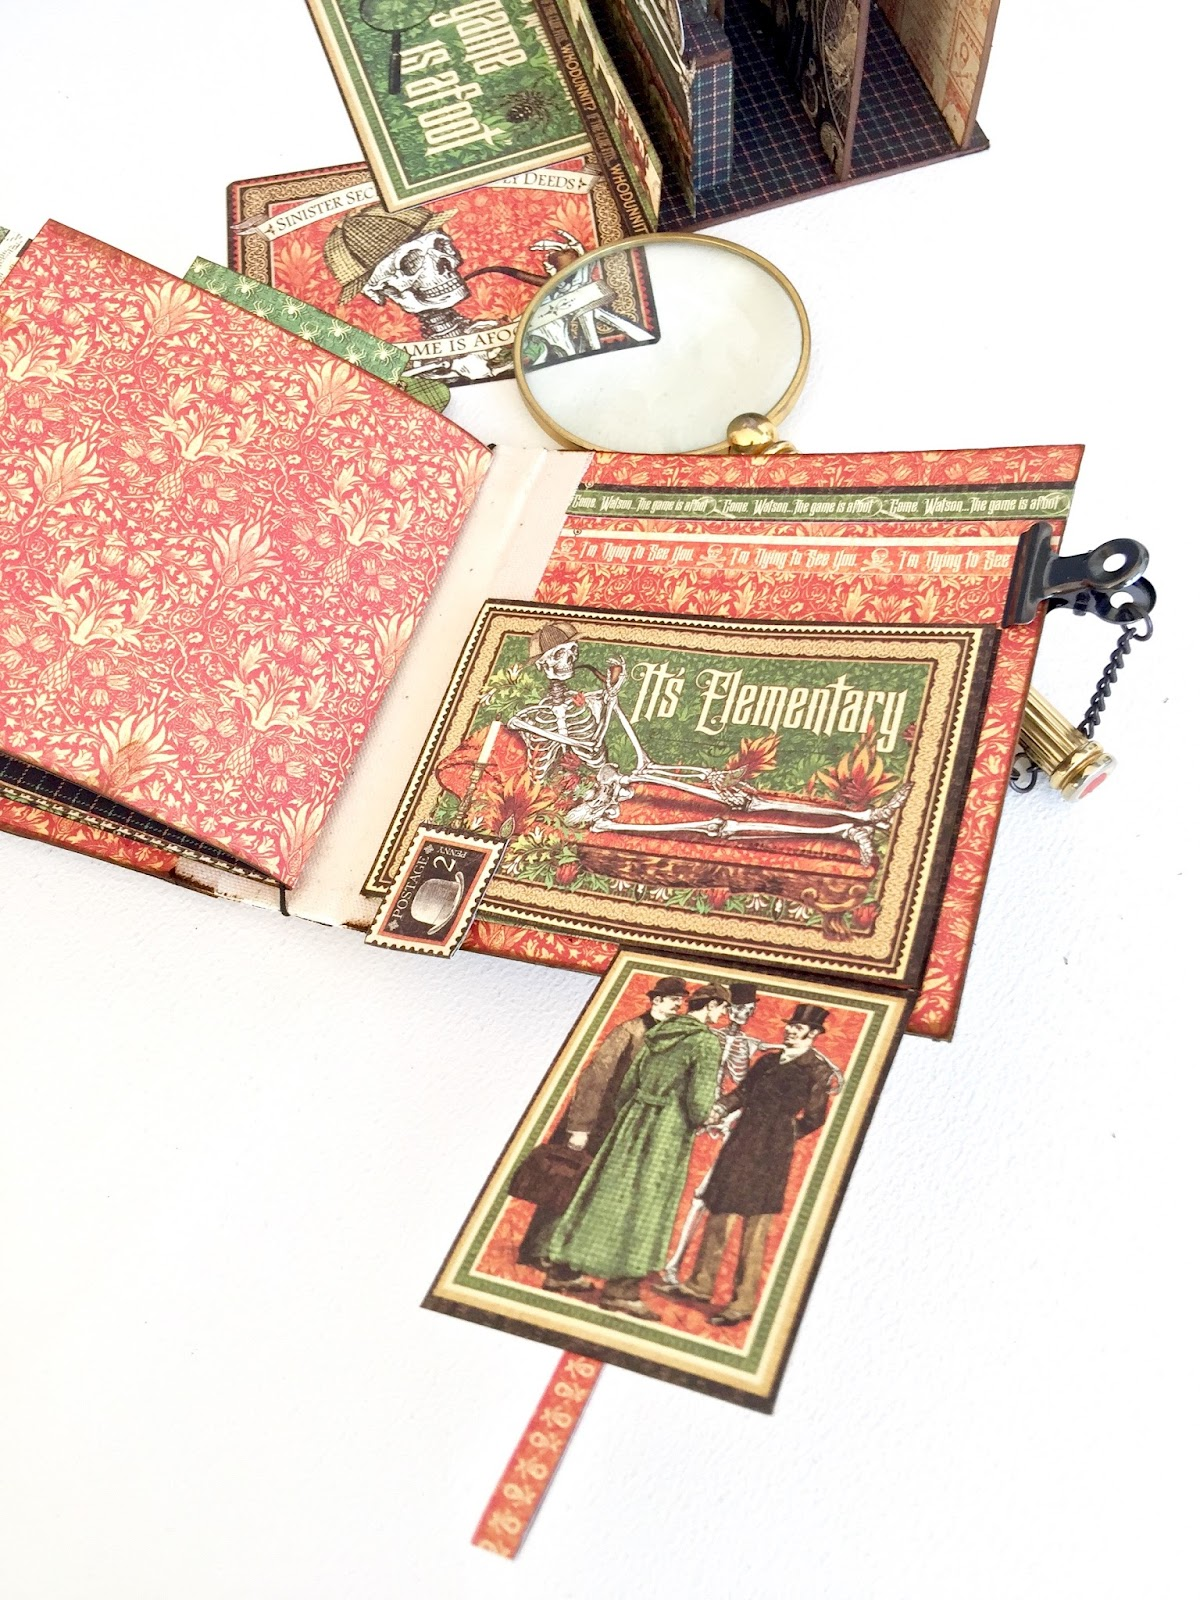 Stand and Mini Album Master Detective by Marina Blaukitchen Product by Graphic 45 photo 27.jpg